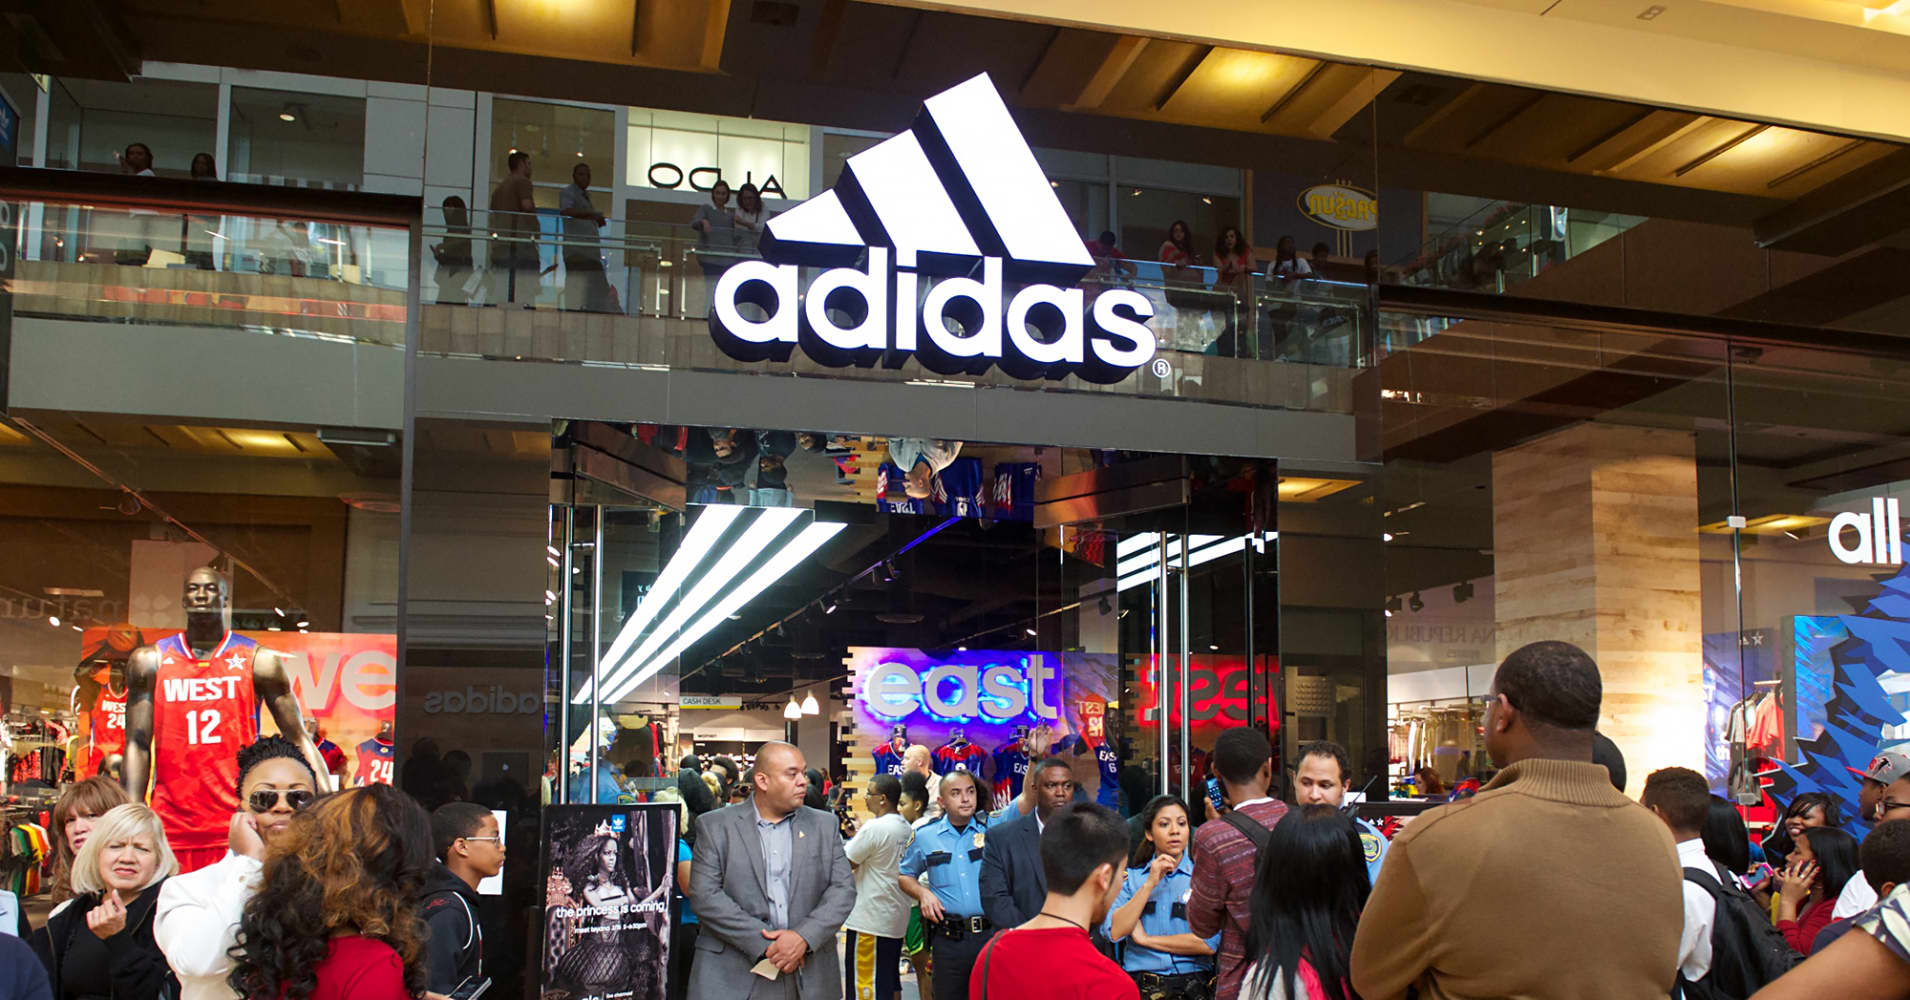 adidas outlet store near me can adidas uk ship to us